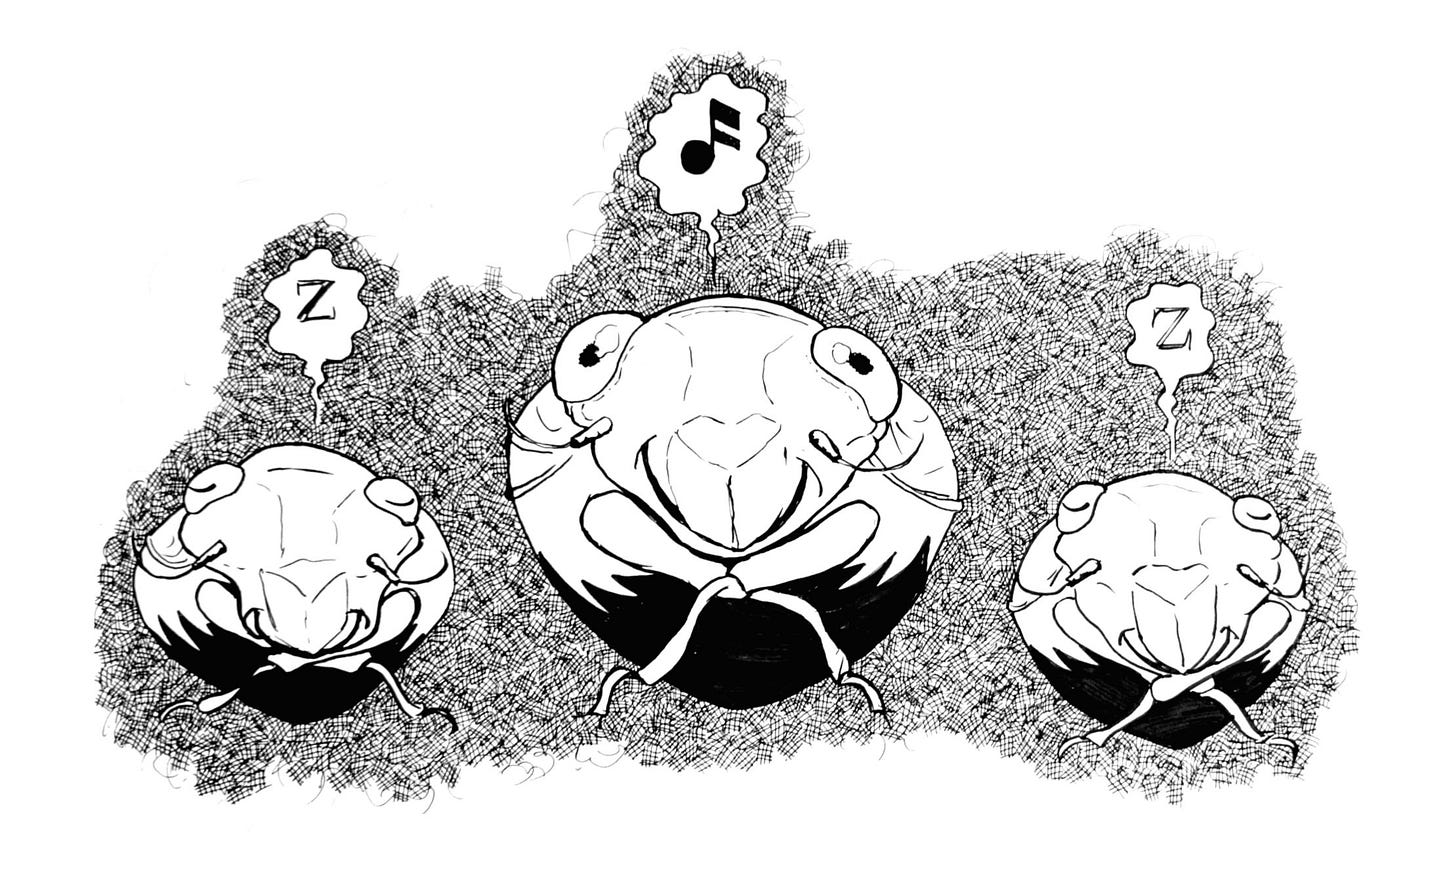 ink drawing of three cicadas, facing forward, underground. Two have their eyes closed a and Zed above their heads indicating sleep. The middle is awake with a musical note above their head.